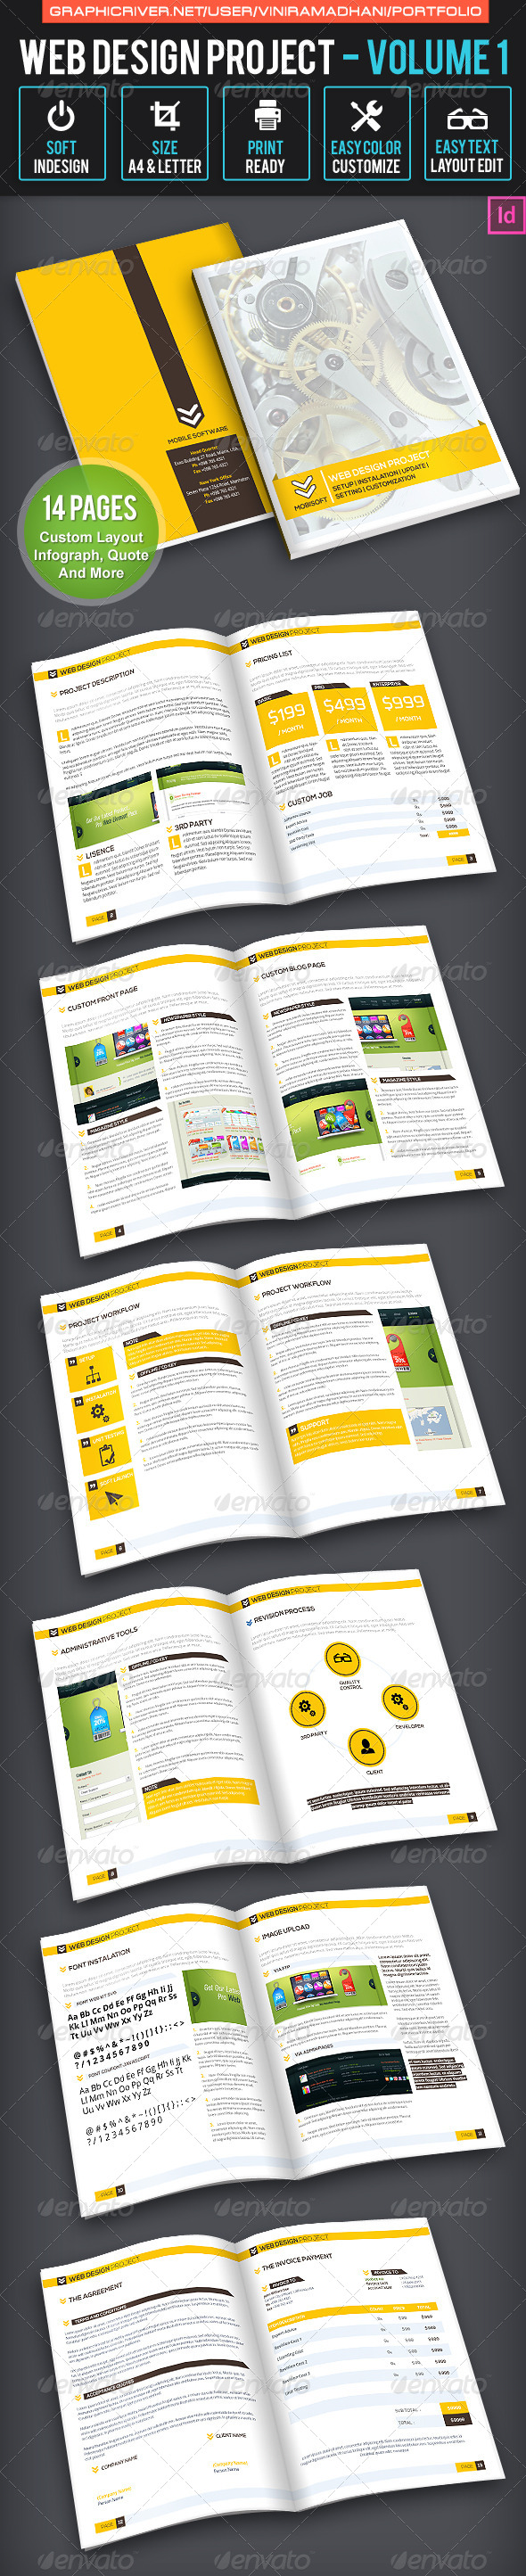 Web Design Project | Volume 1 - Proposals & Invoices Stationery